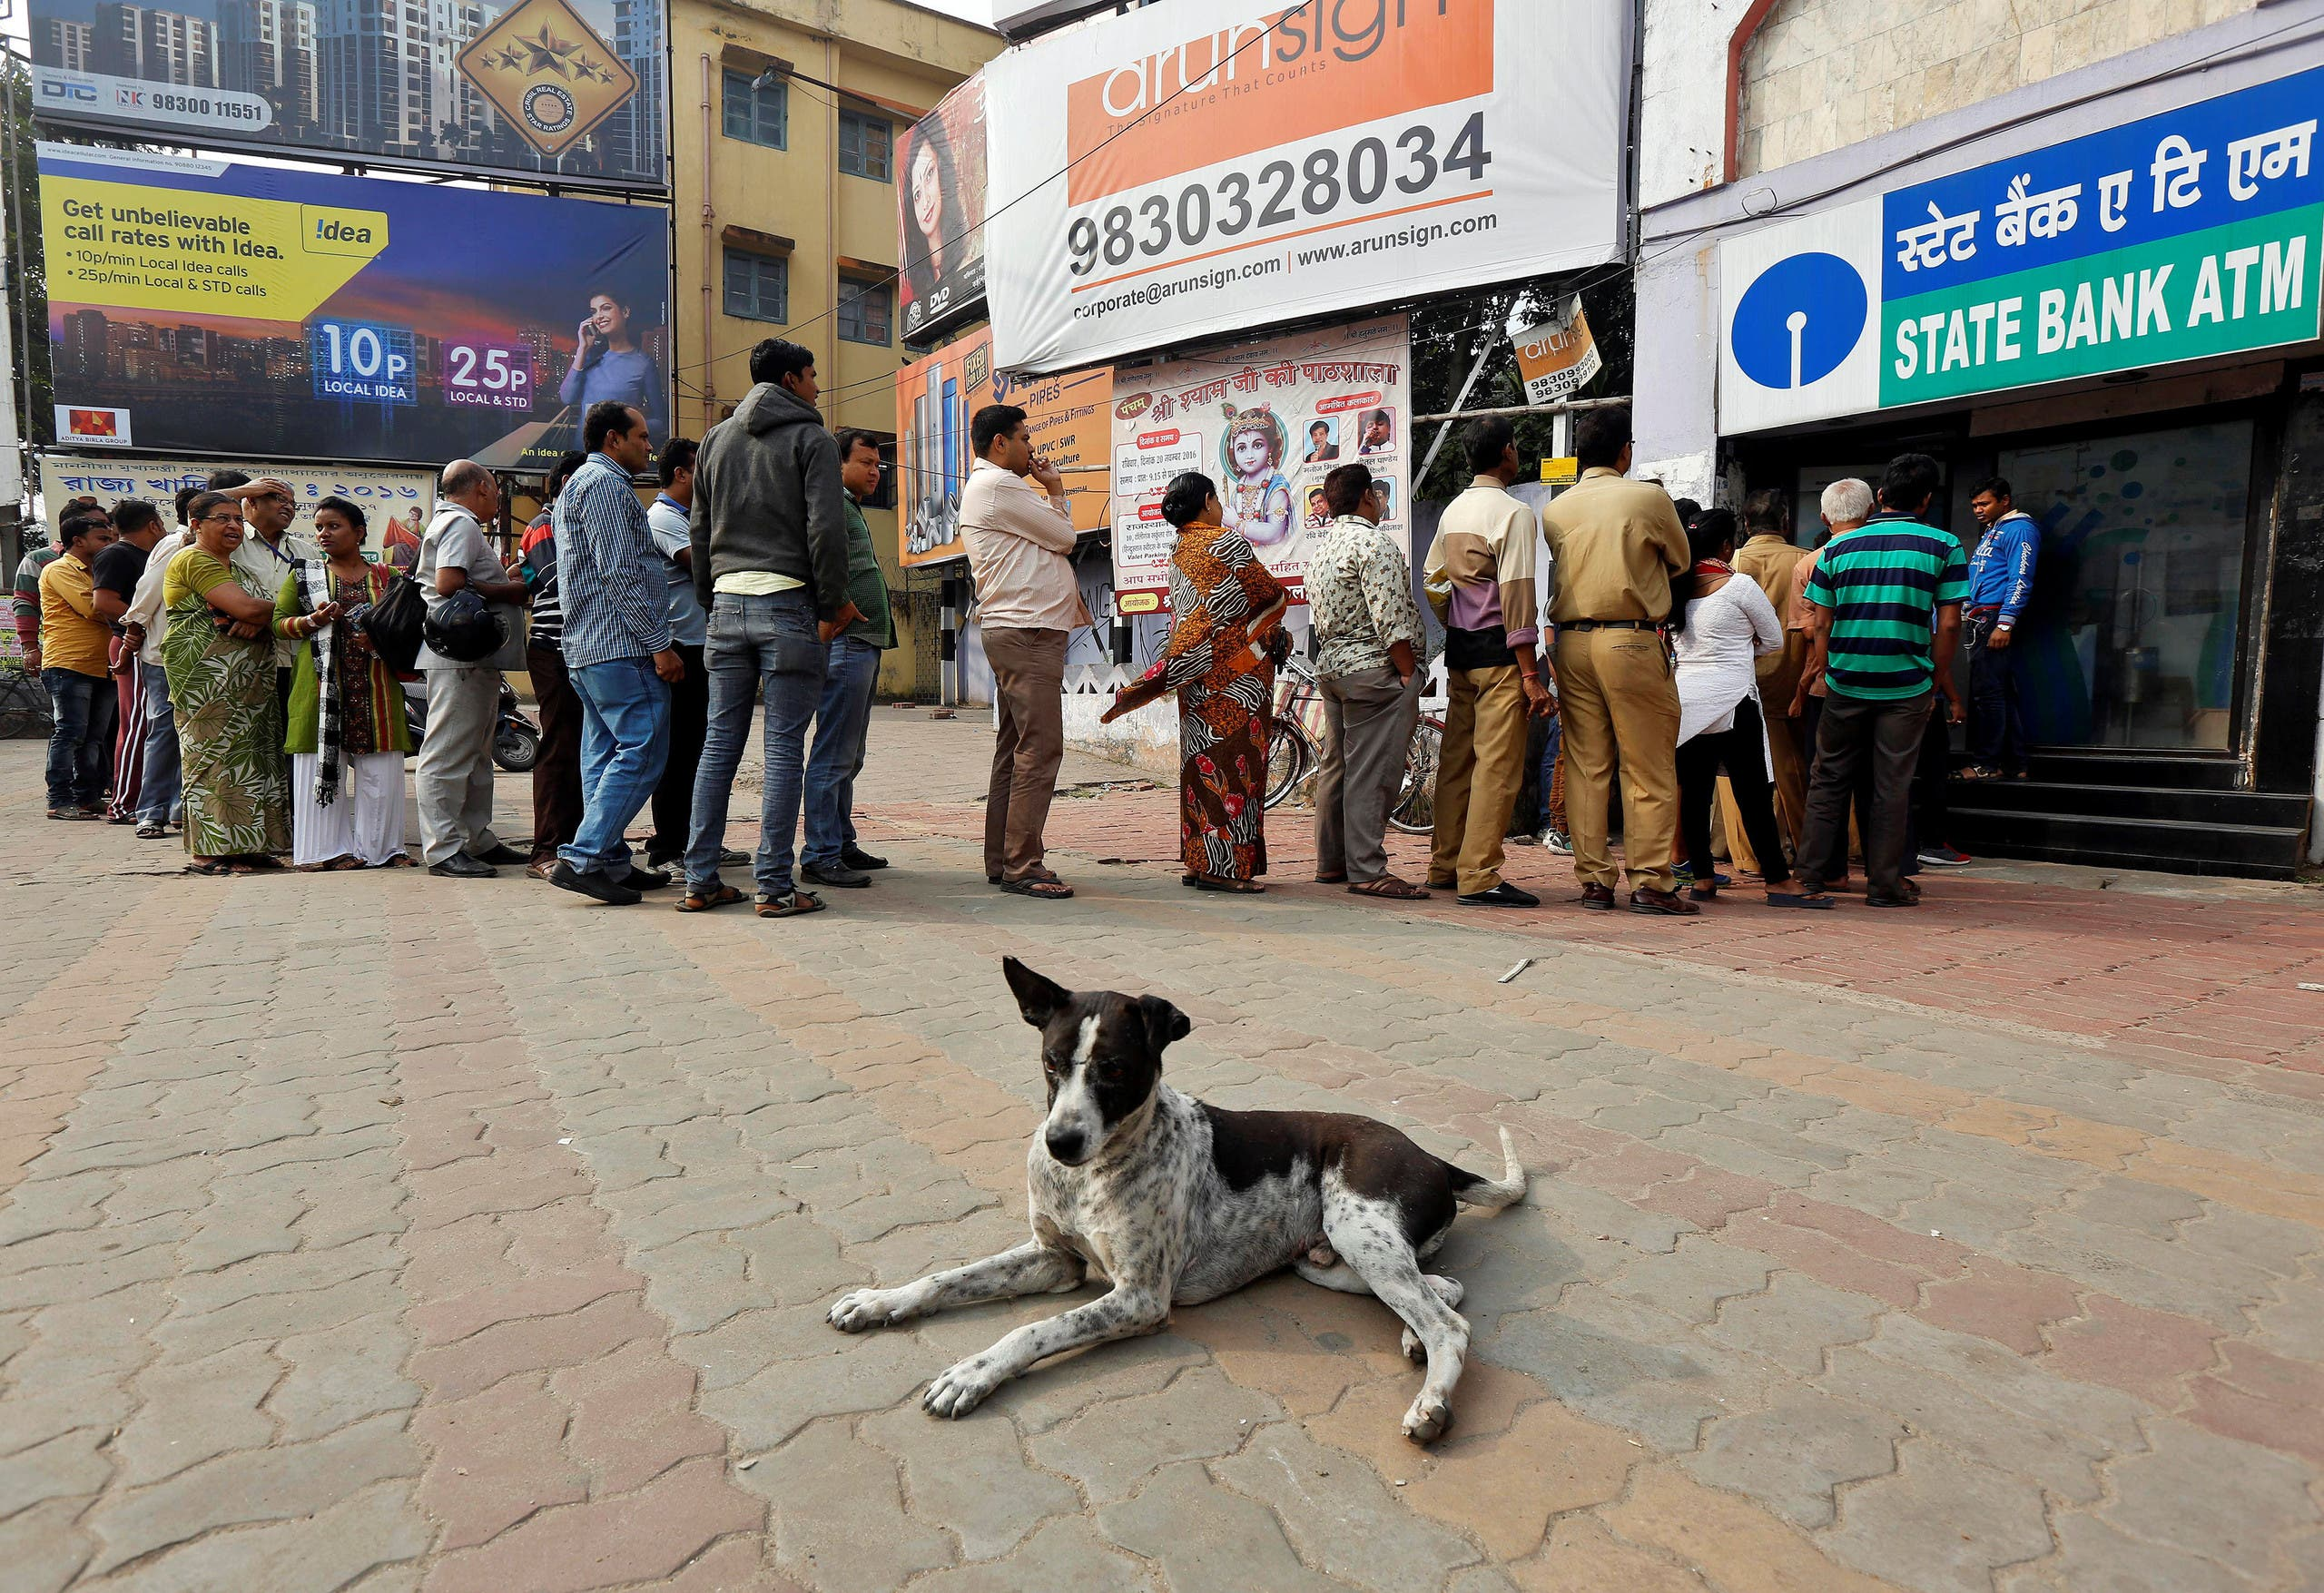 People queue outside an ATM to withdraw cash in the eastern city of Kolkata, India, on December 4, 2016. (Reuters)